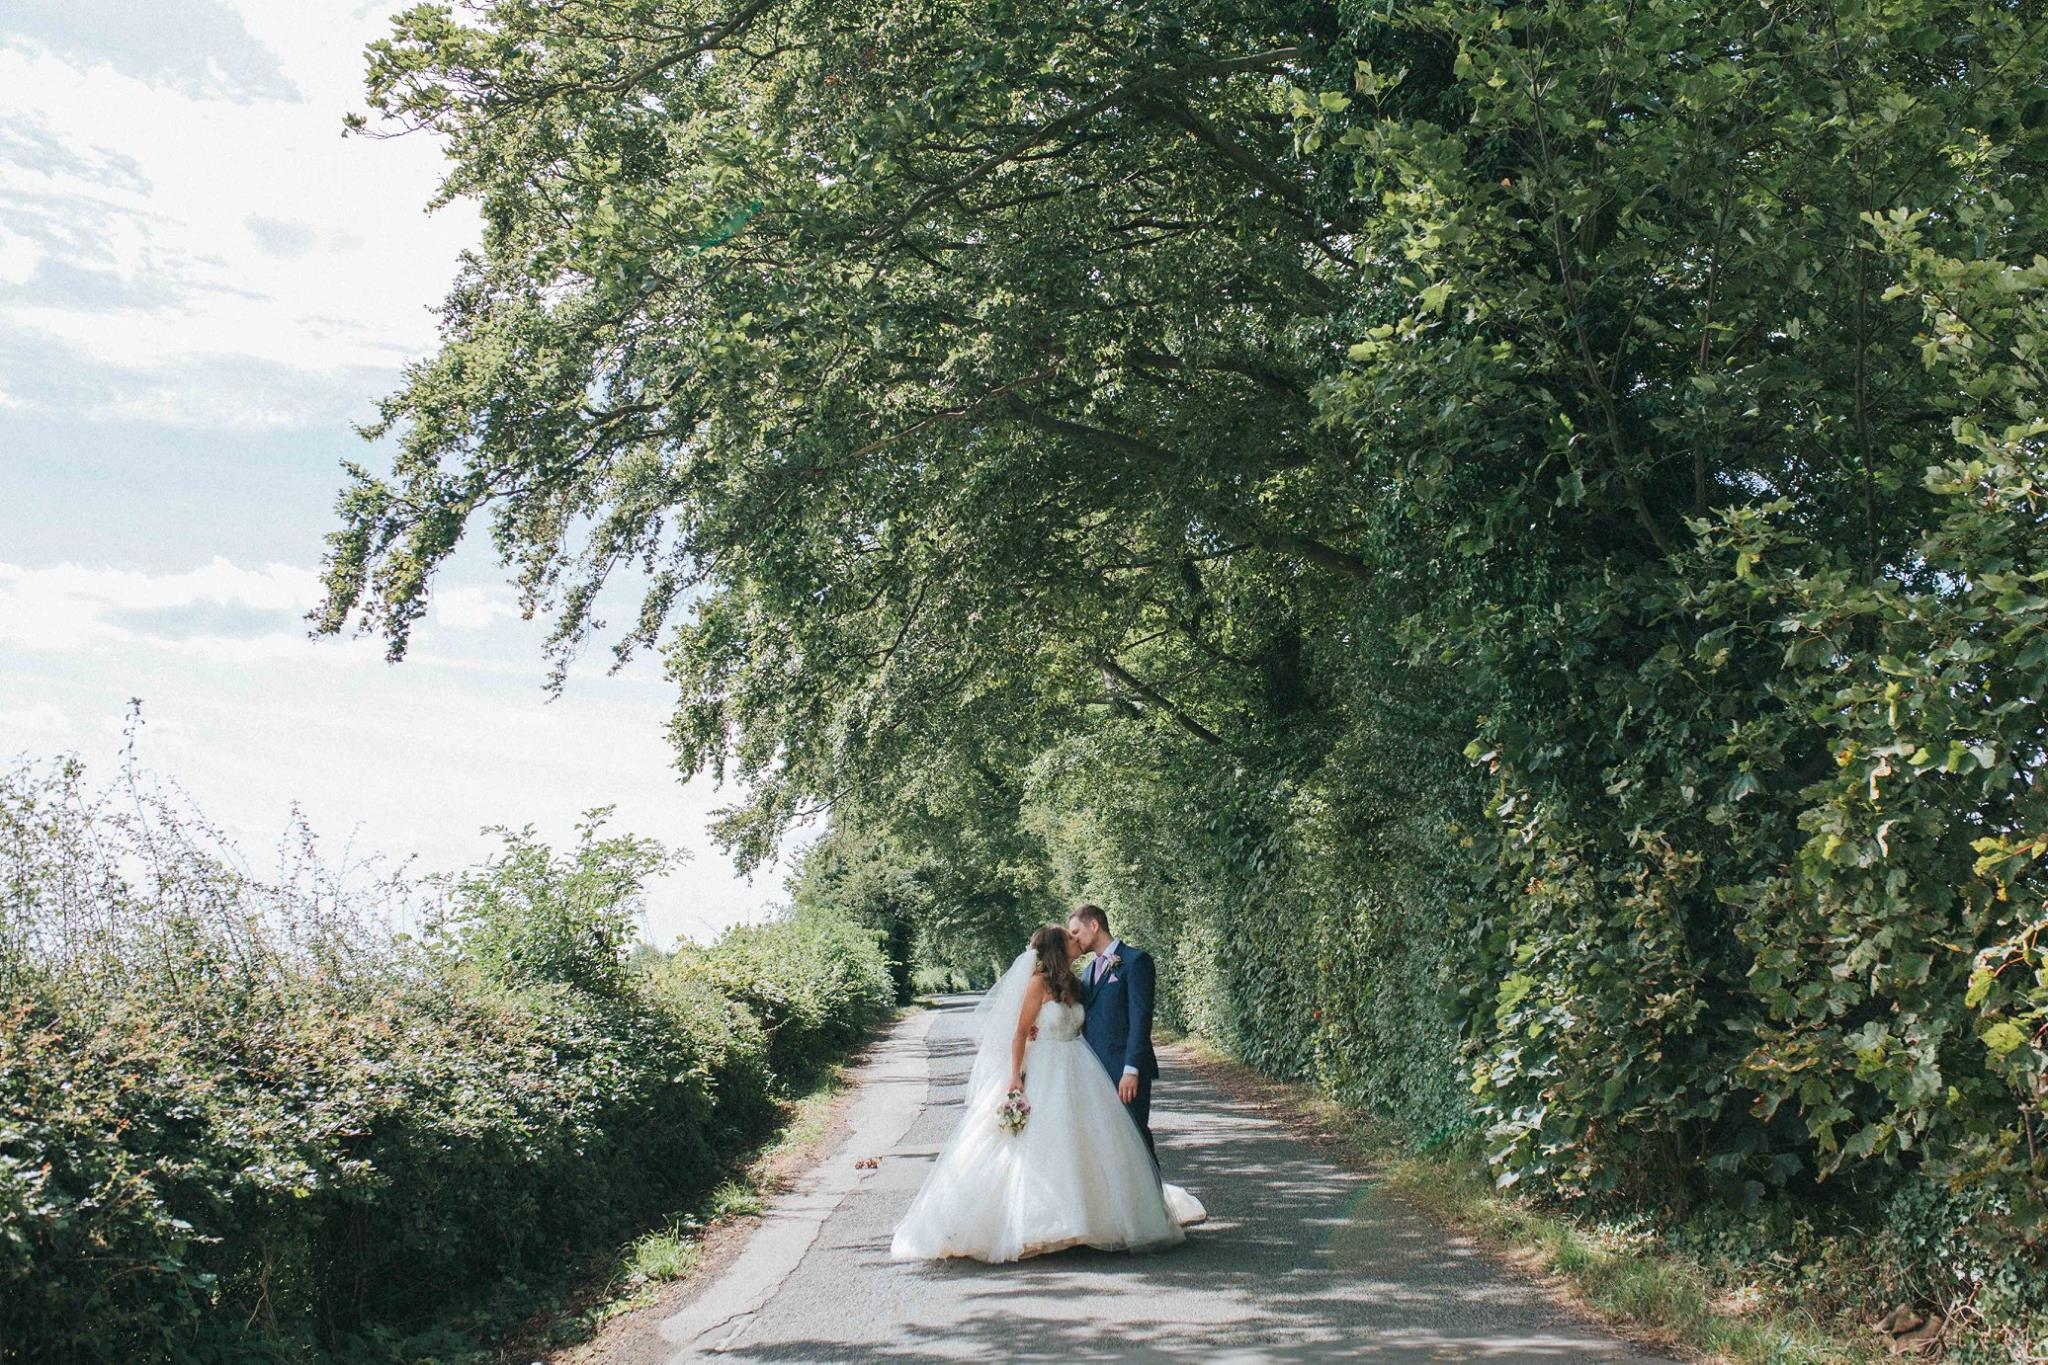 wedding dress budget photography package yorkshire